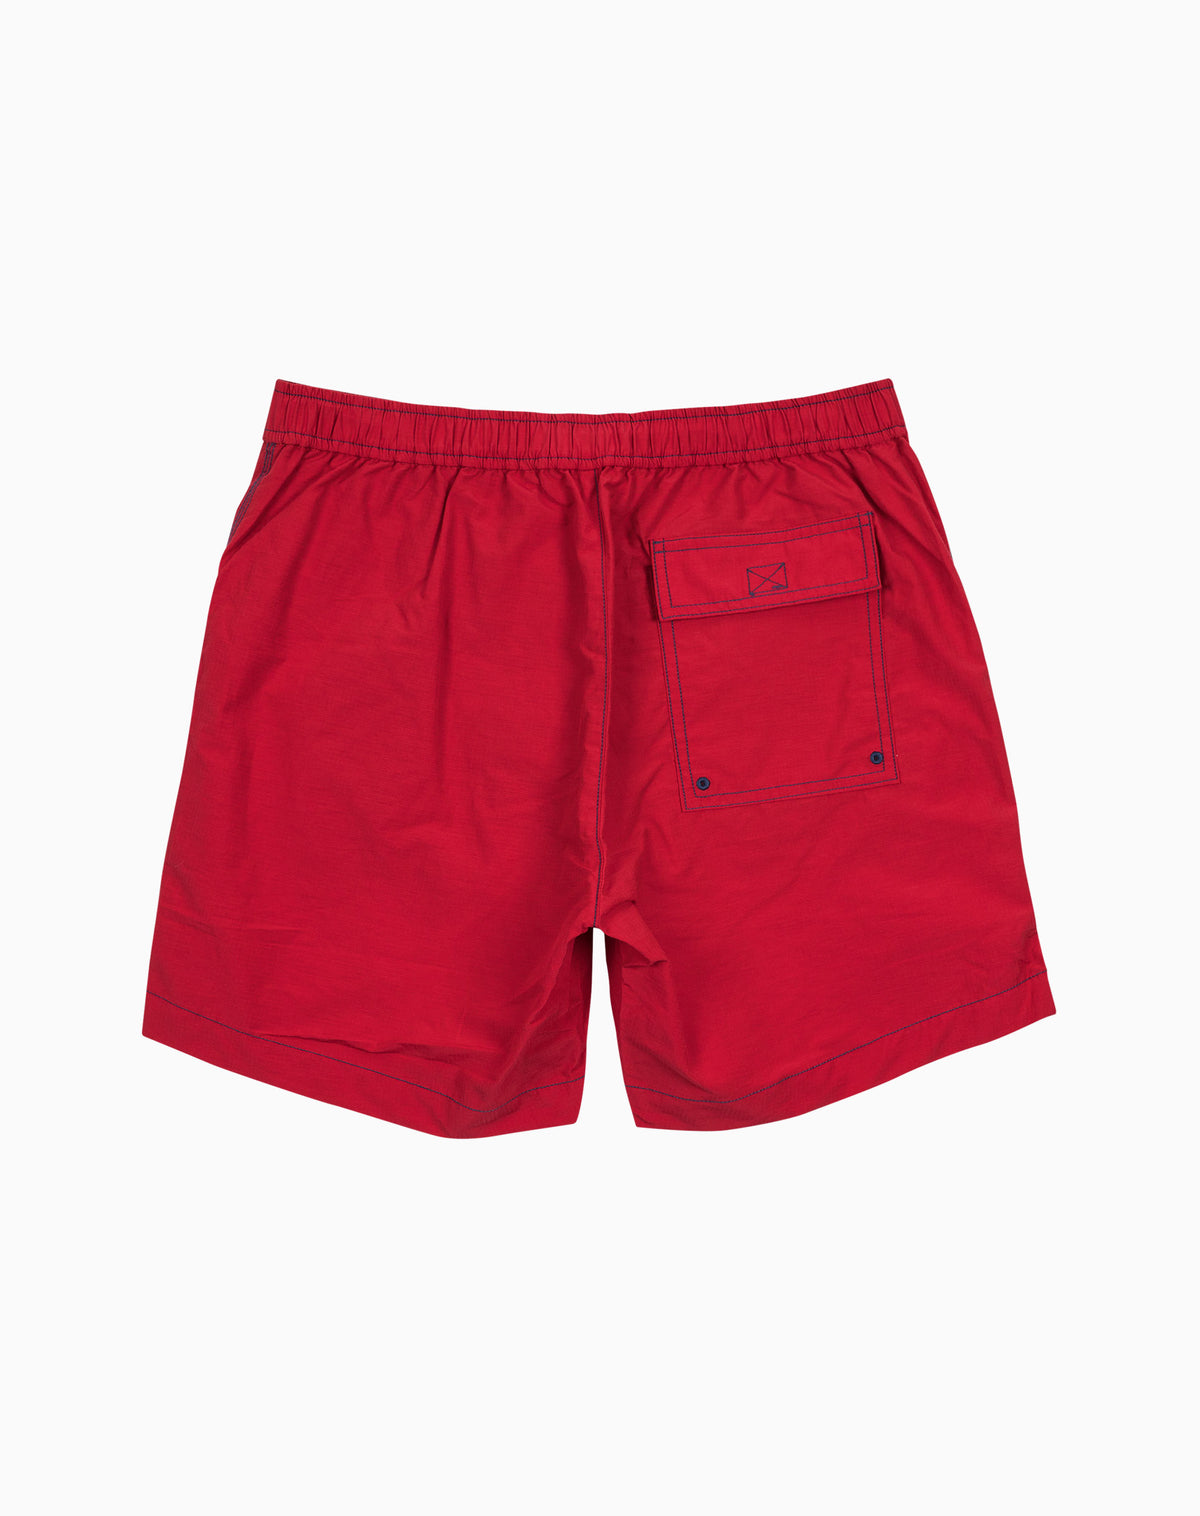 Wavy Utility Trunk in Red